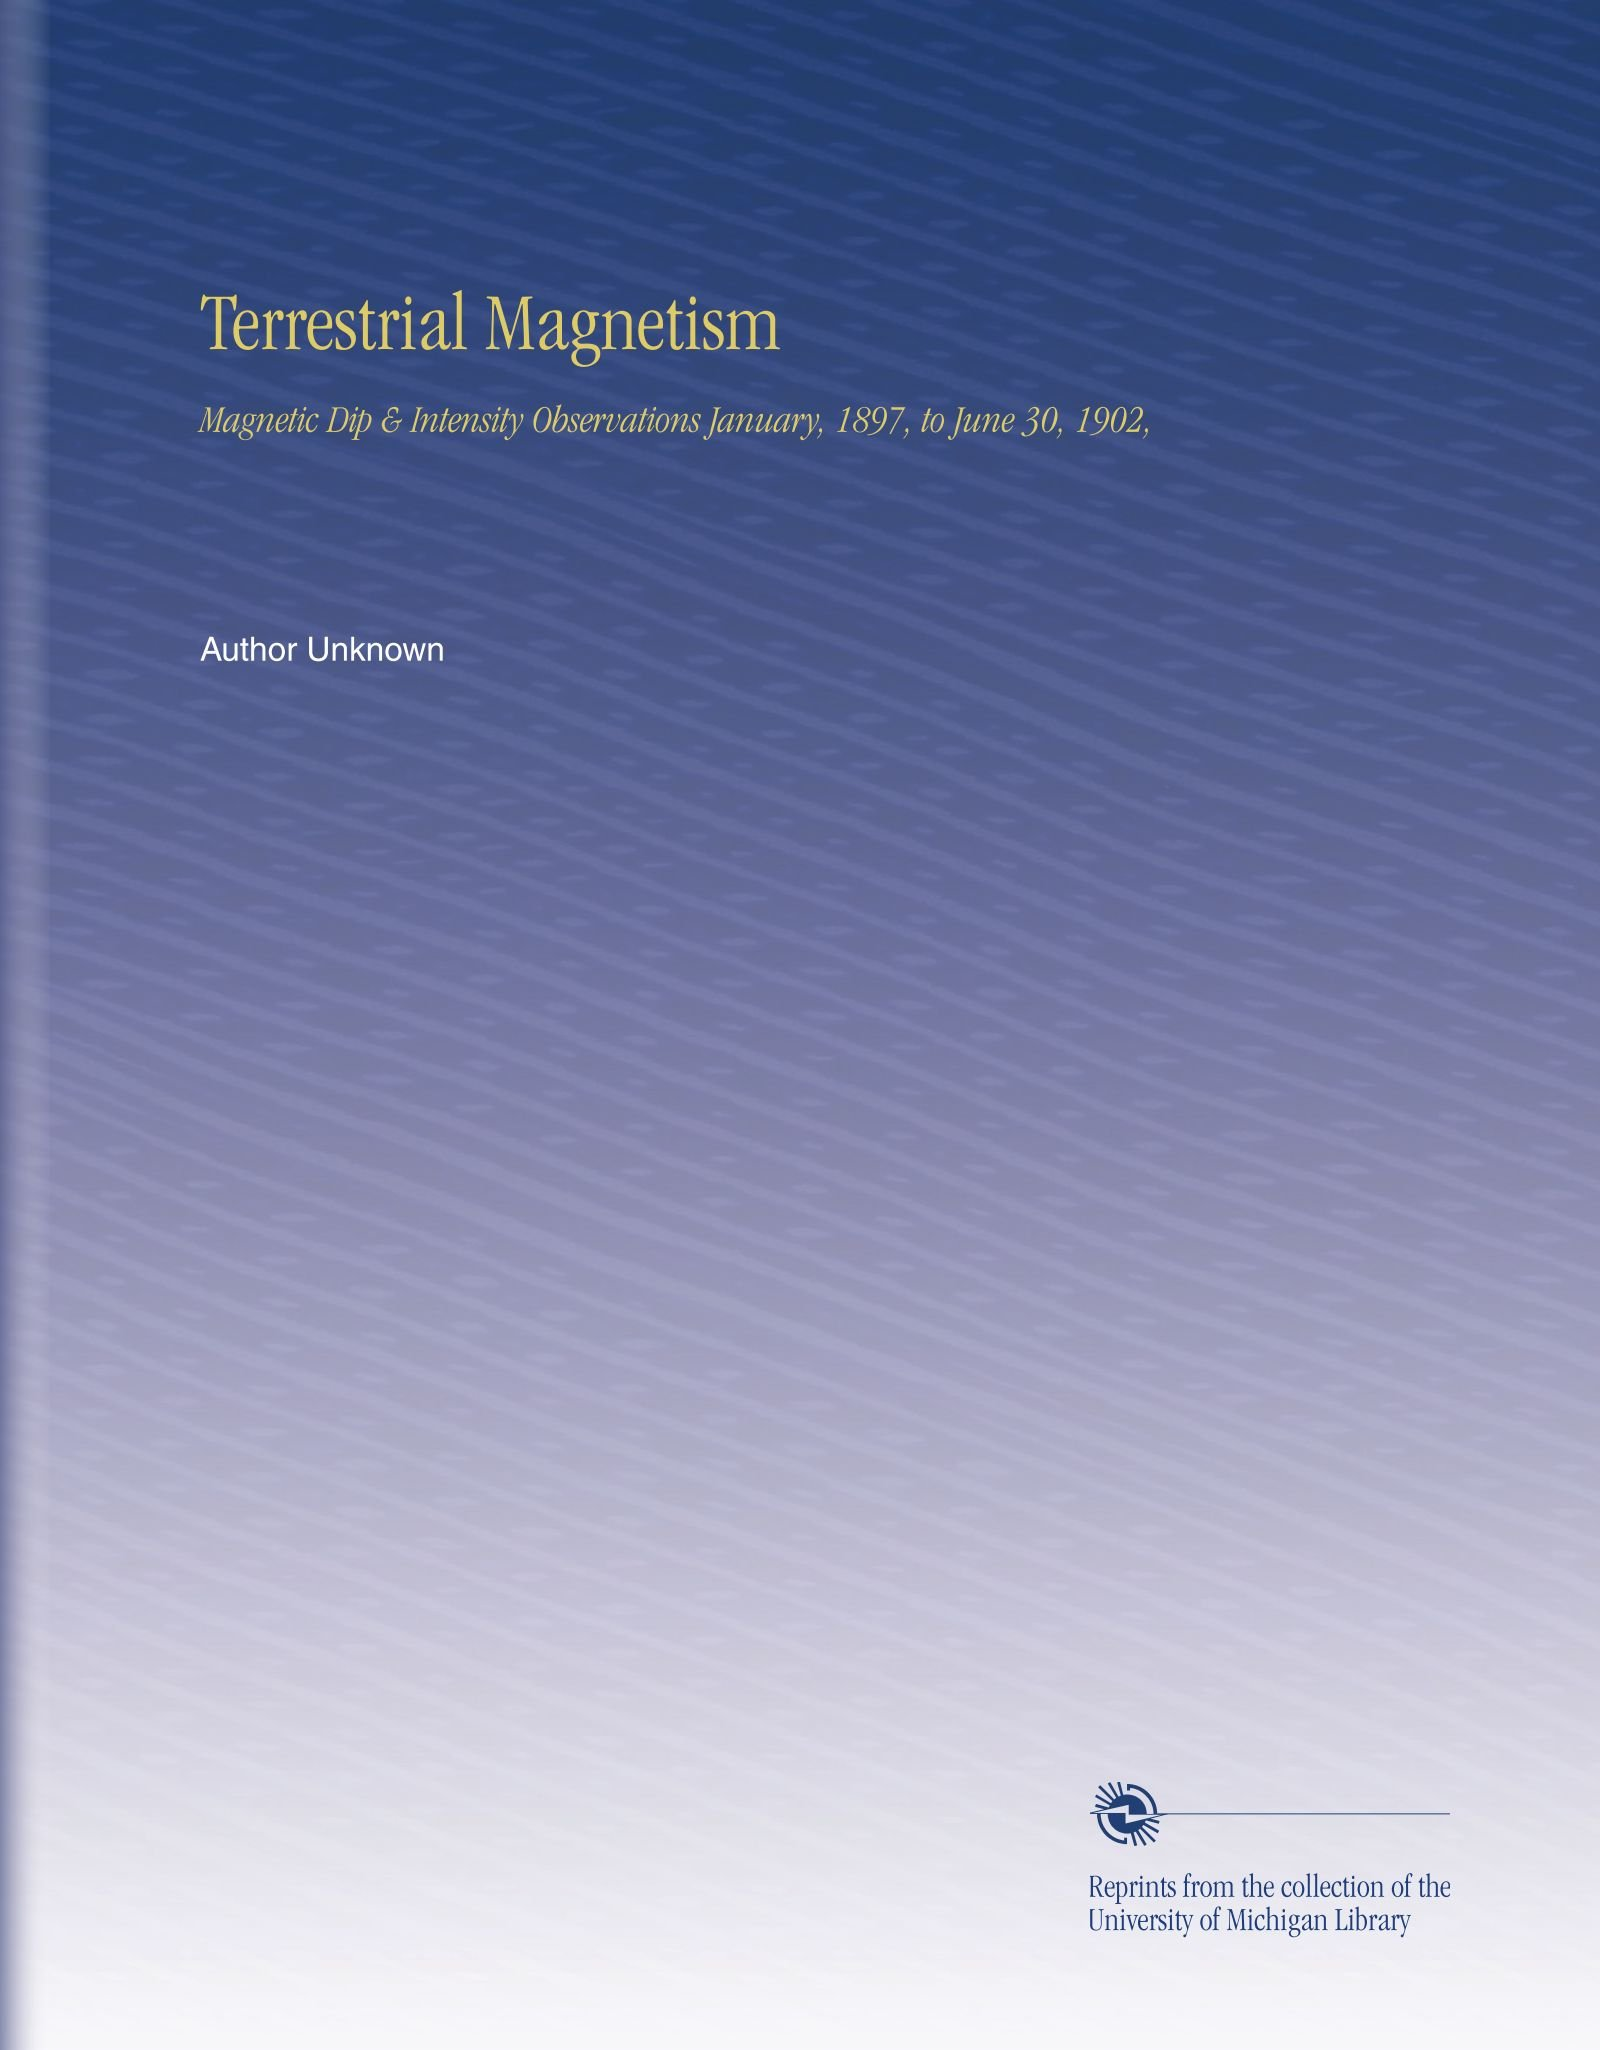 Terrestrial Magnetism: Magnetic Dip & Intensity Observations January, 1897, to June 30, 1902, pdf